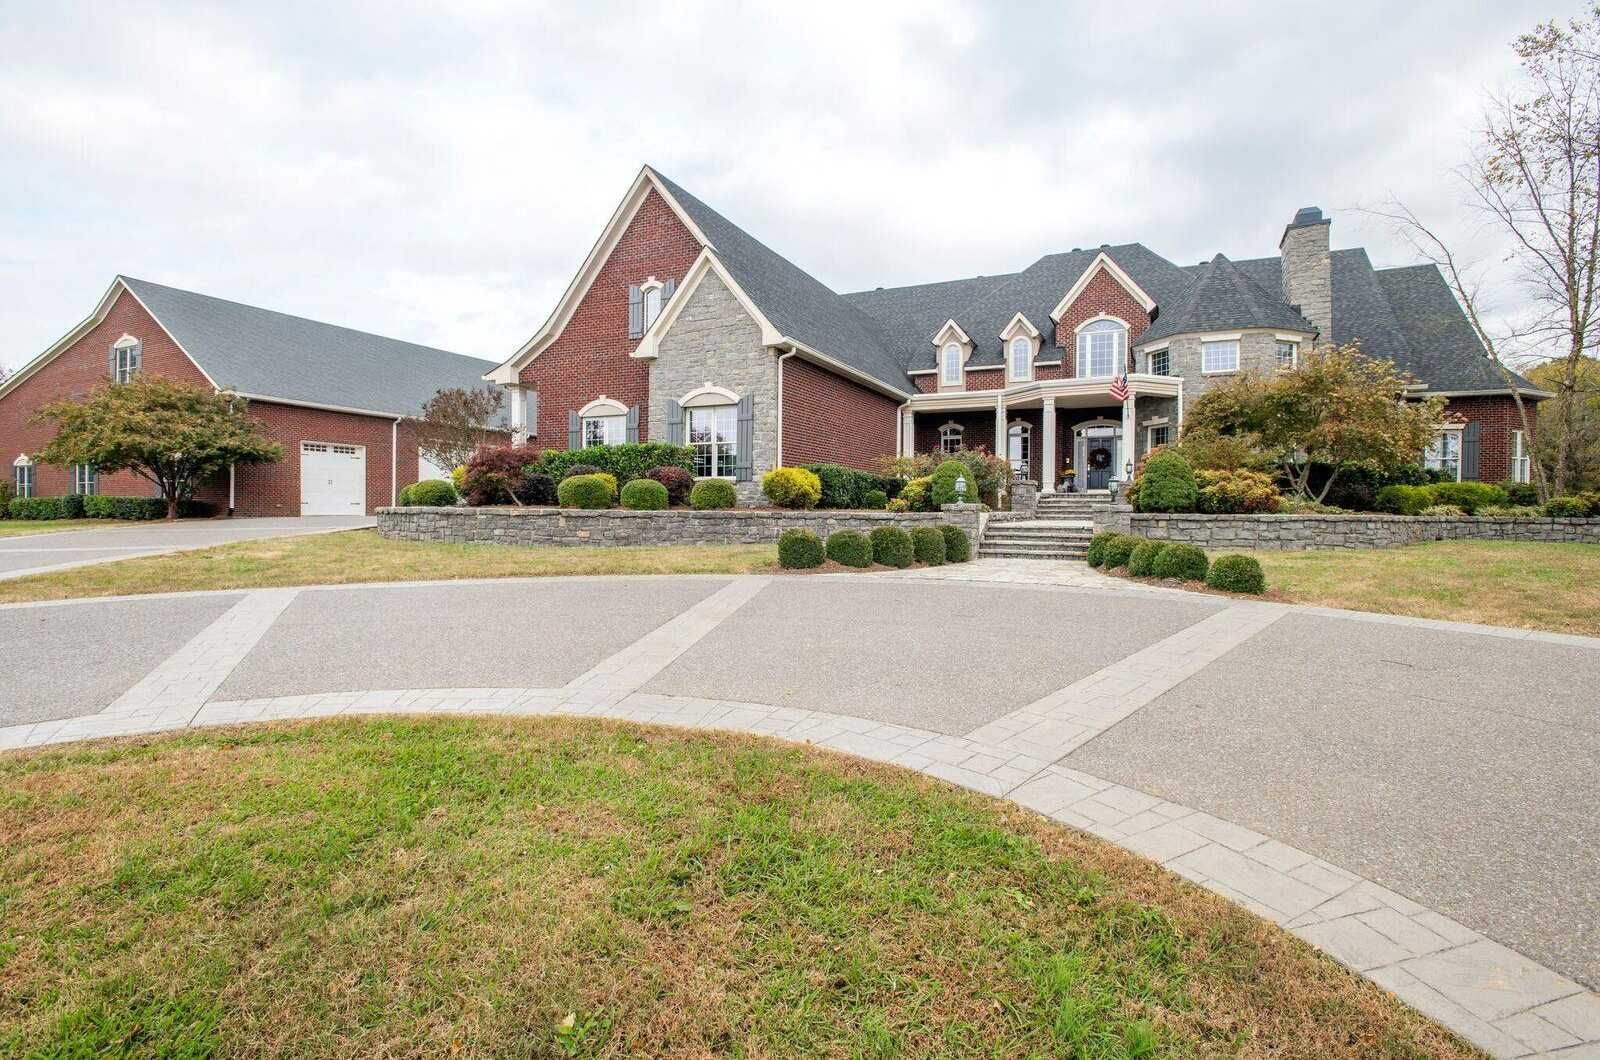 $1,979,900 - 5Br/6Ba -  for Sale in None, Mount Juliet